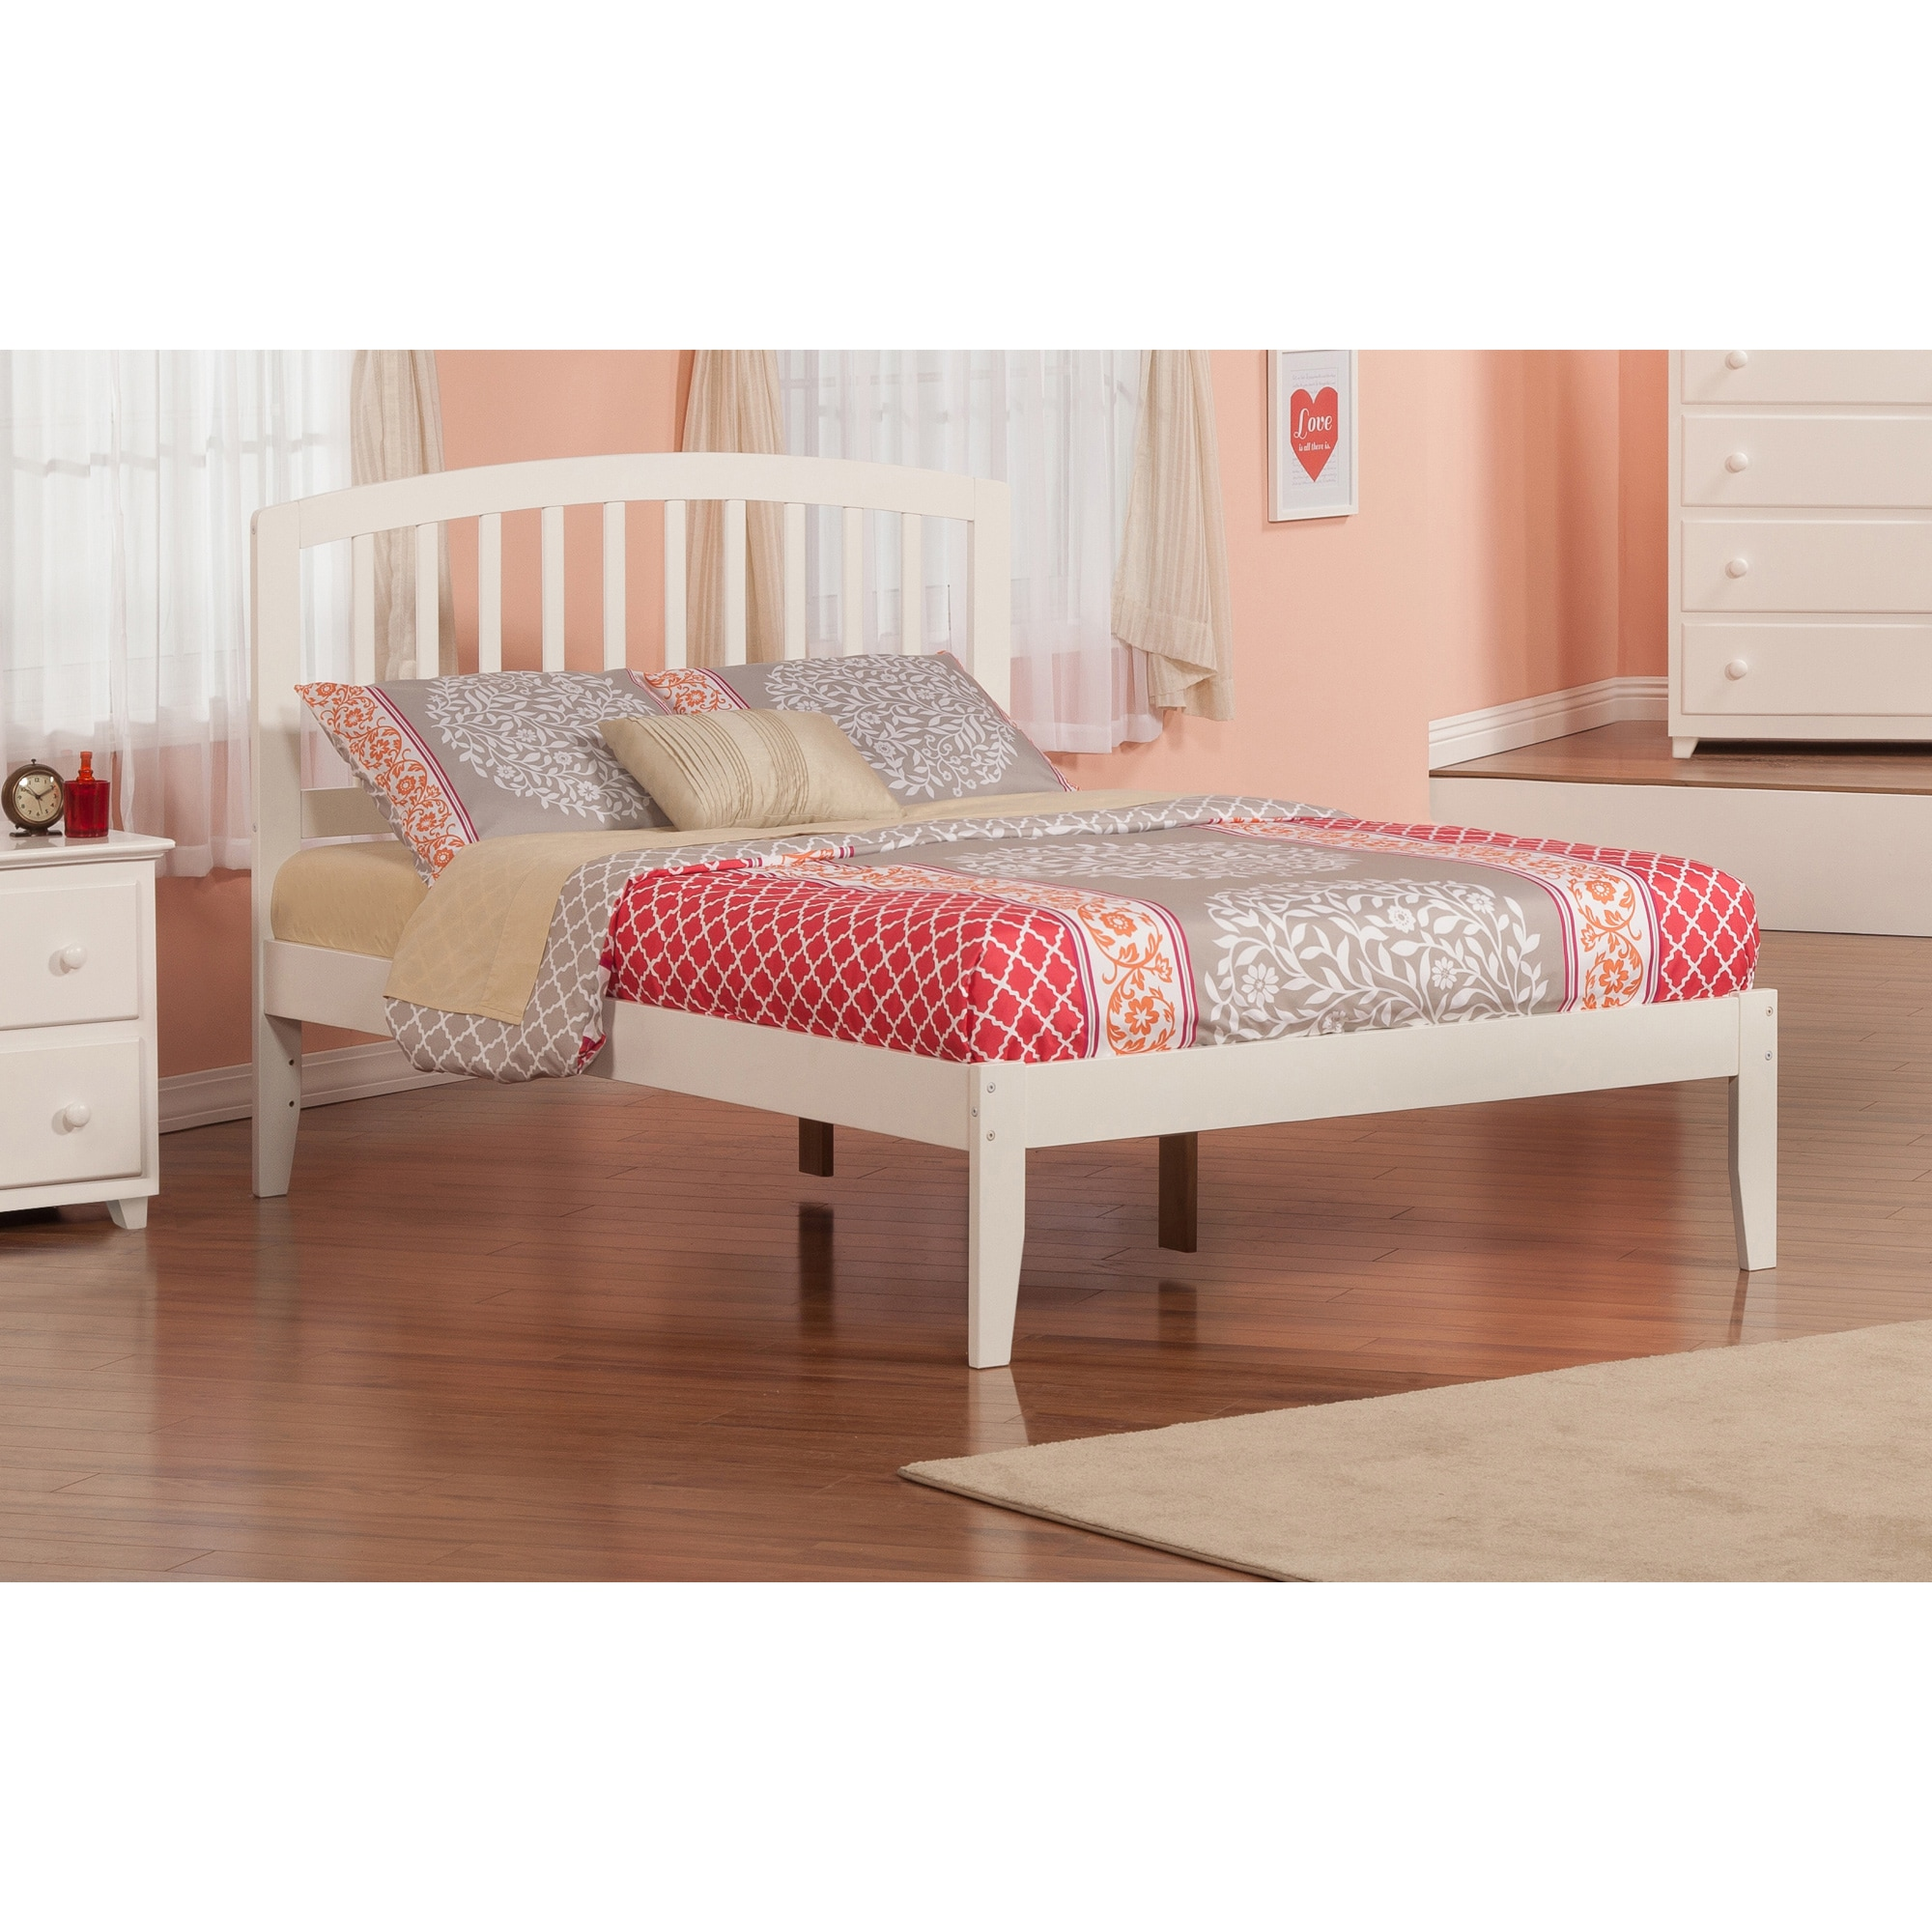 Atlantic Furniture Richmond White Full-size Open Foot Bed